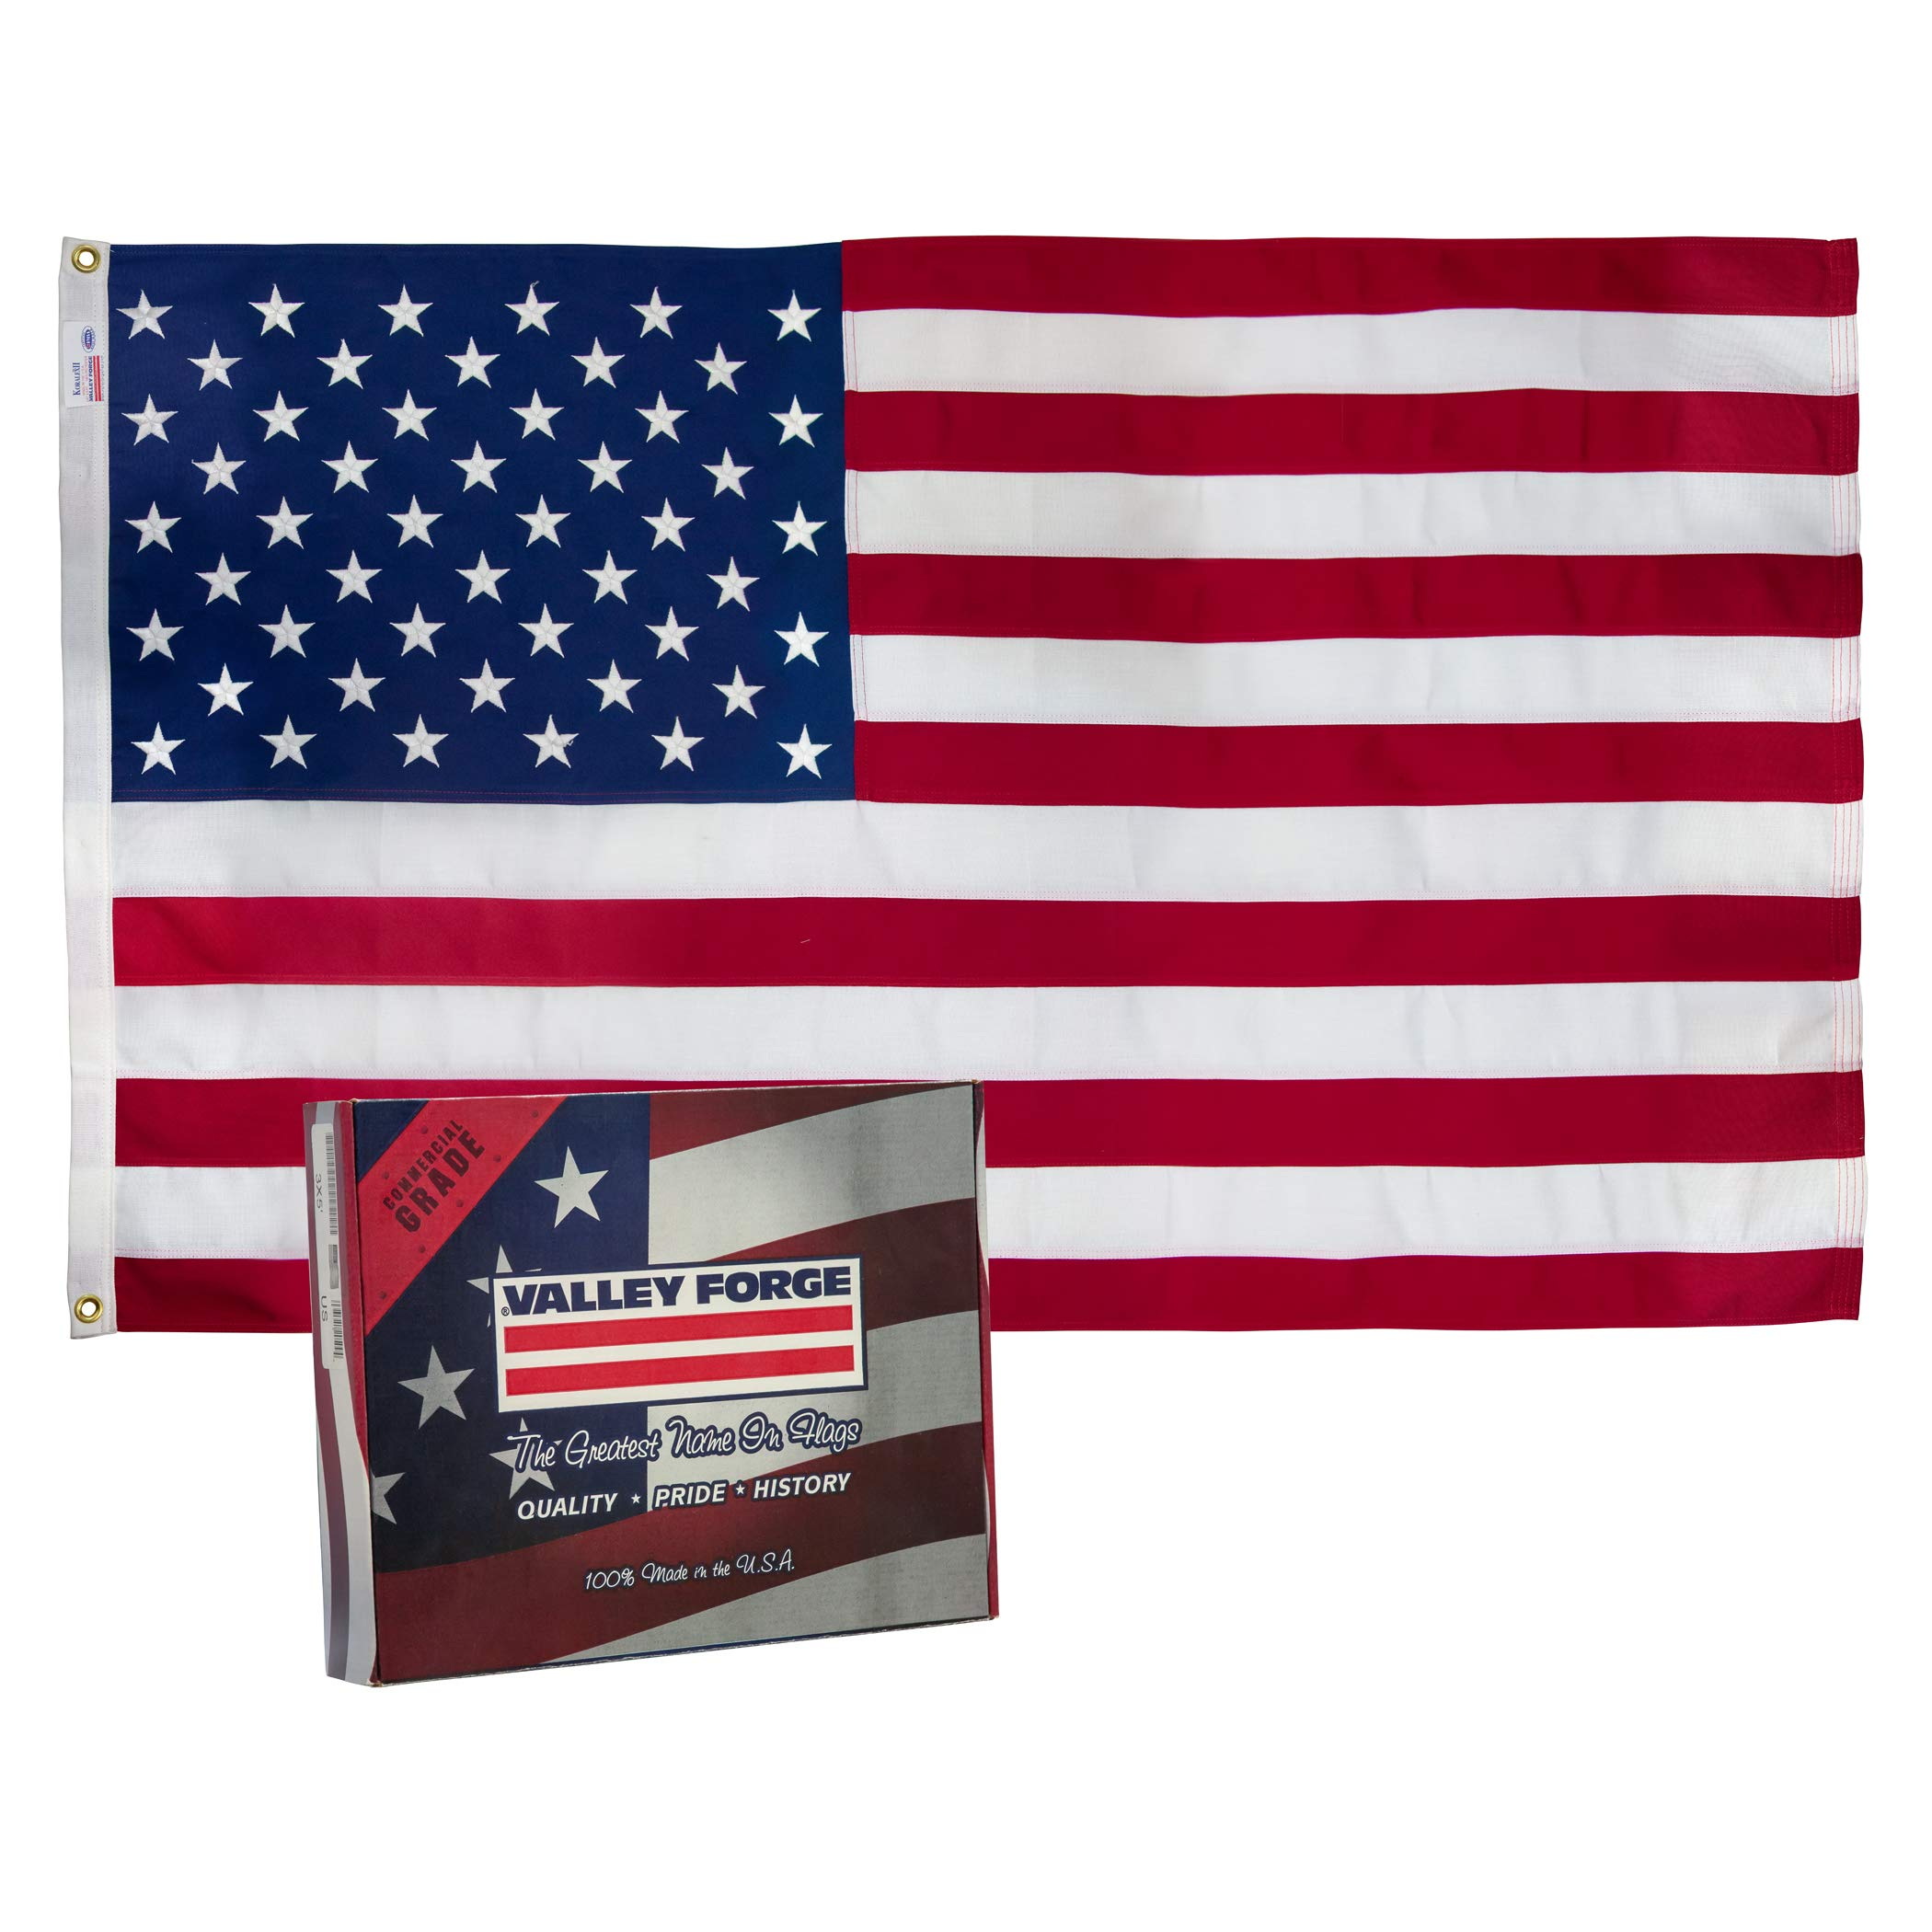 Valley Forge, American Flag, Spun Polyester 2-Ply, 3'x5', 100% Made in USA, Heavy-Duty Brass Grommets by Valley Forge